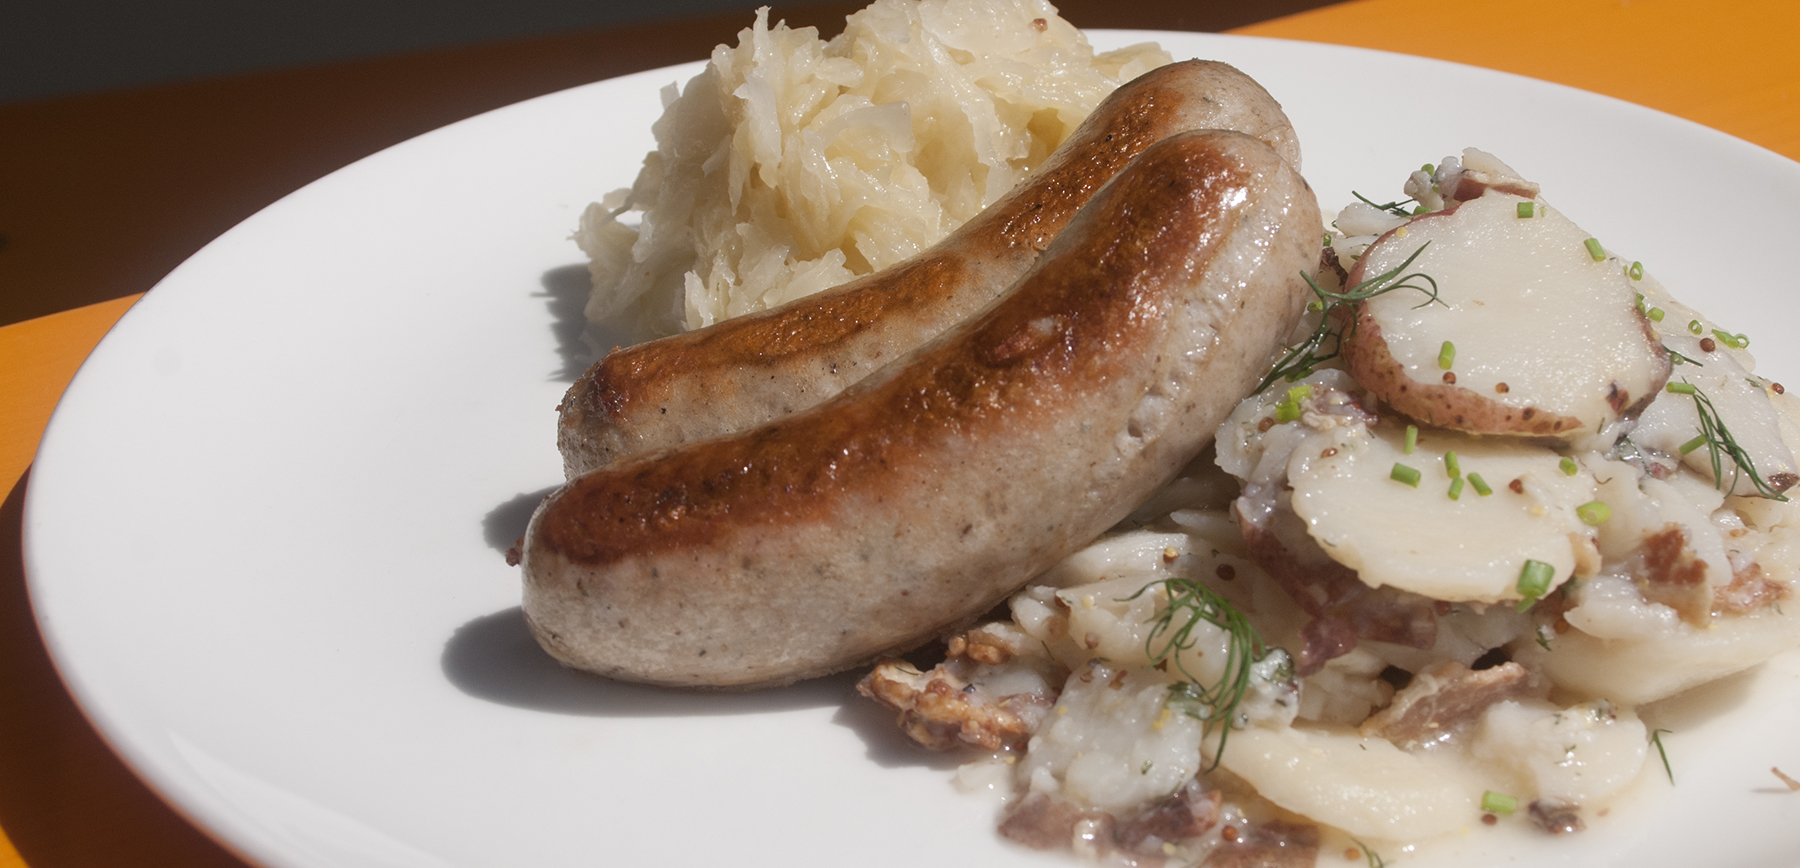 The Mountain Brauhaus Authentic German Cuisine